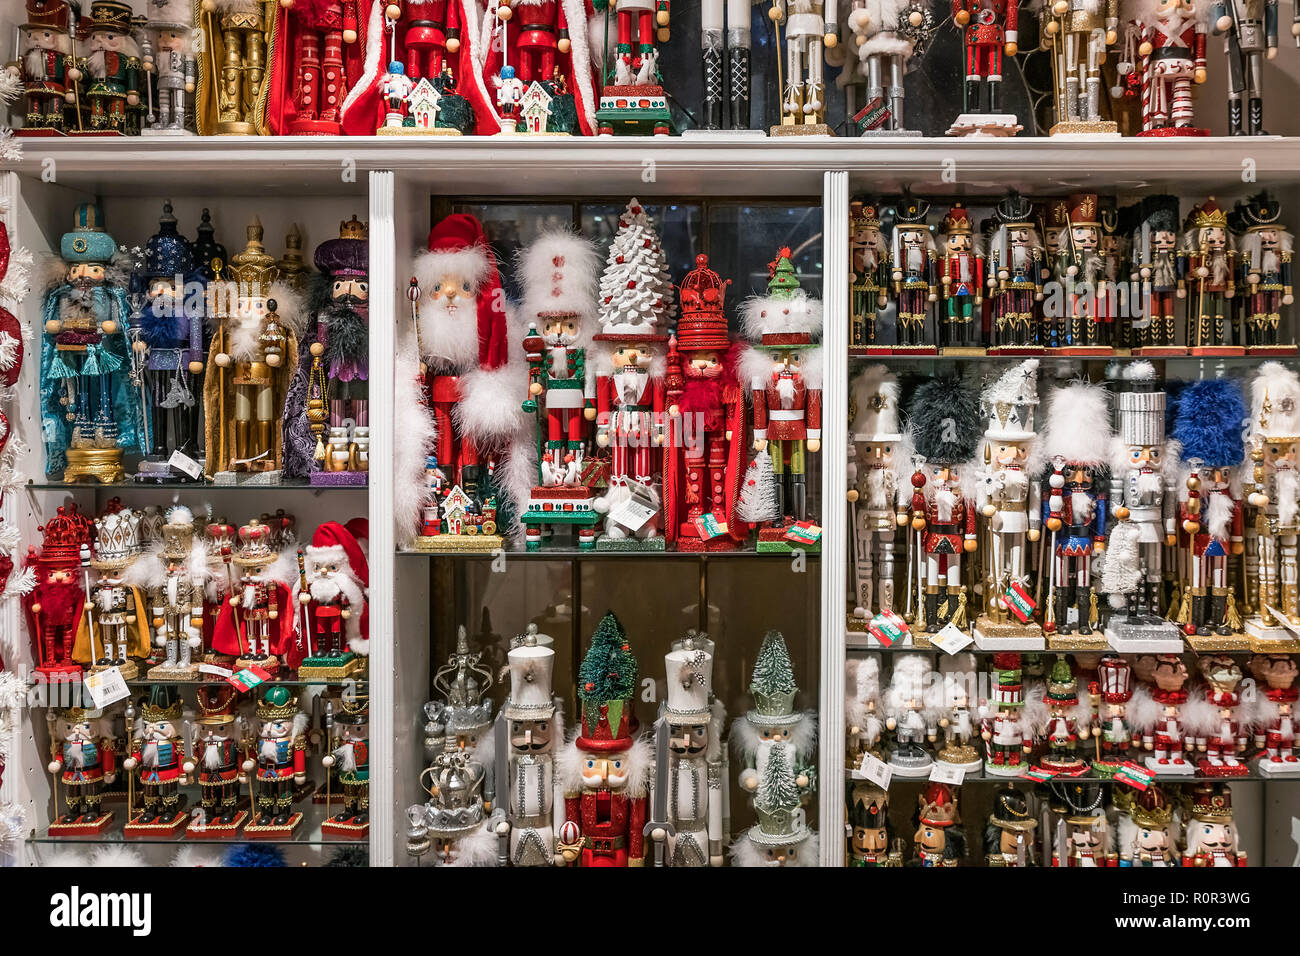 Wide selection of nutcracker figurines at the Yankee Candle flagship store, South Deerfield, Massachusetts, USA. - Stock Image